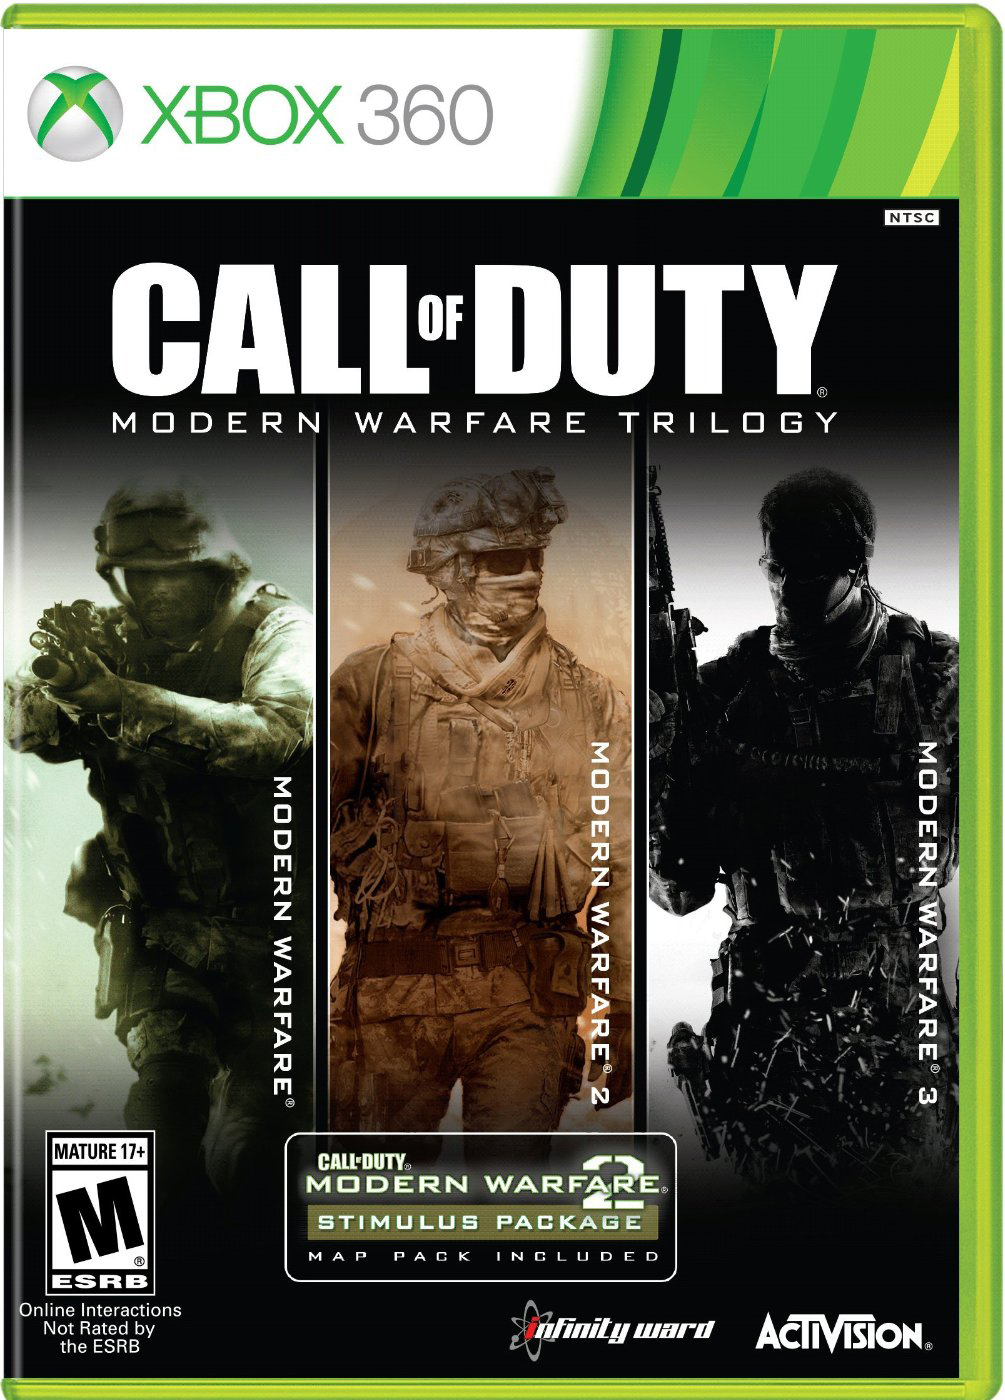 Call of Duty: MW Trilogy